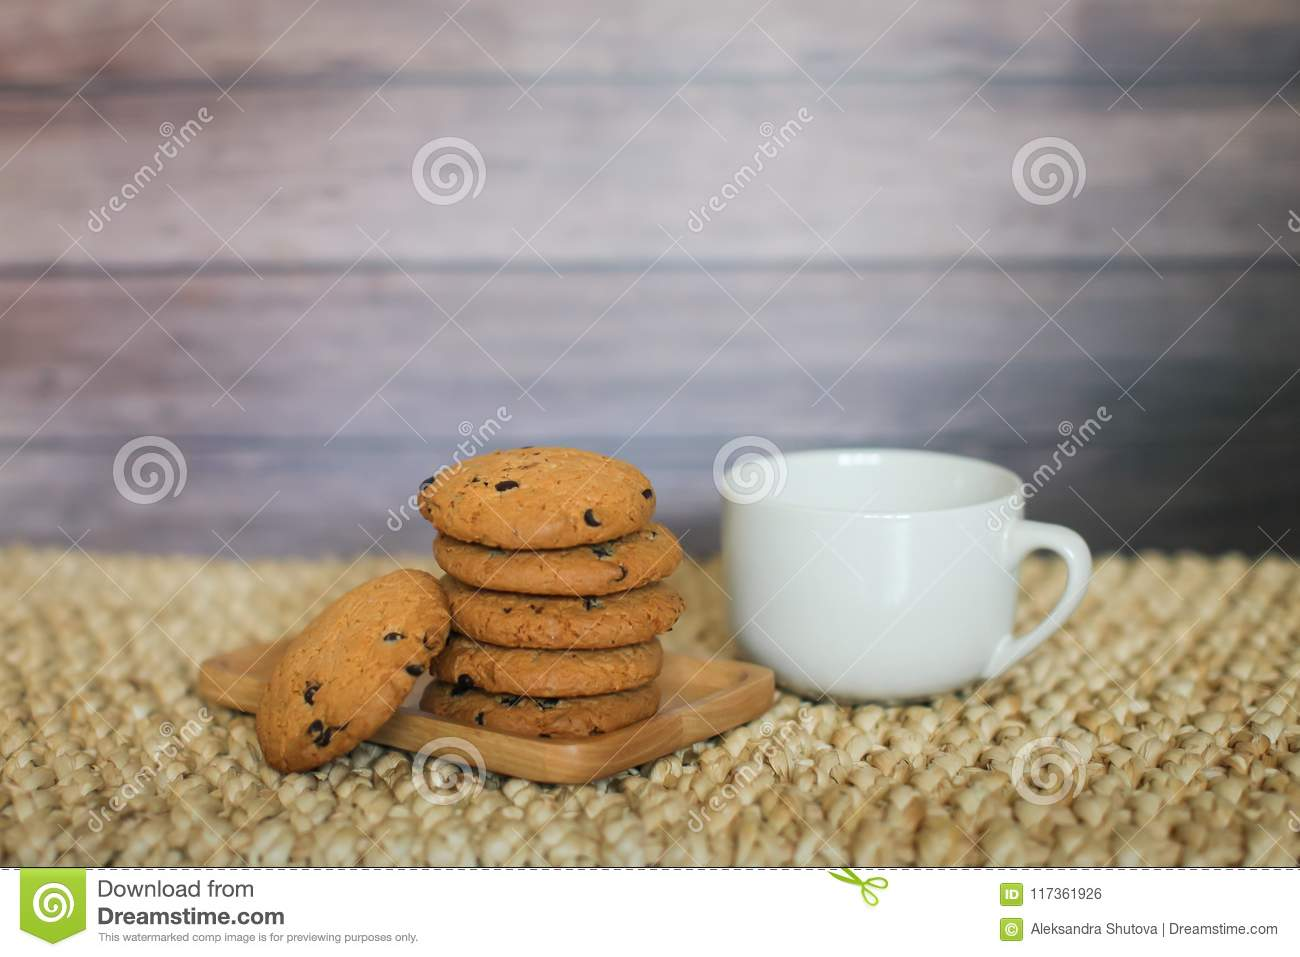 White mug and homemade oatmeal cookies folded in a pile on wooden plate and wooden background